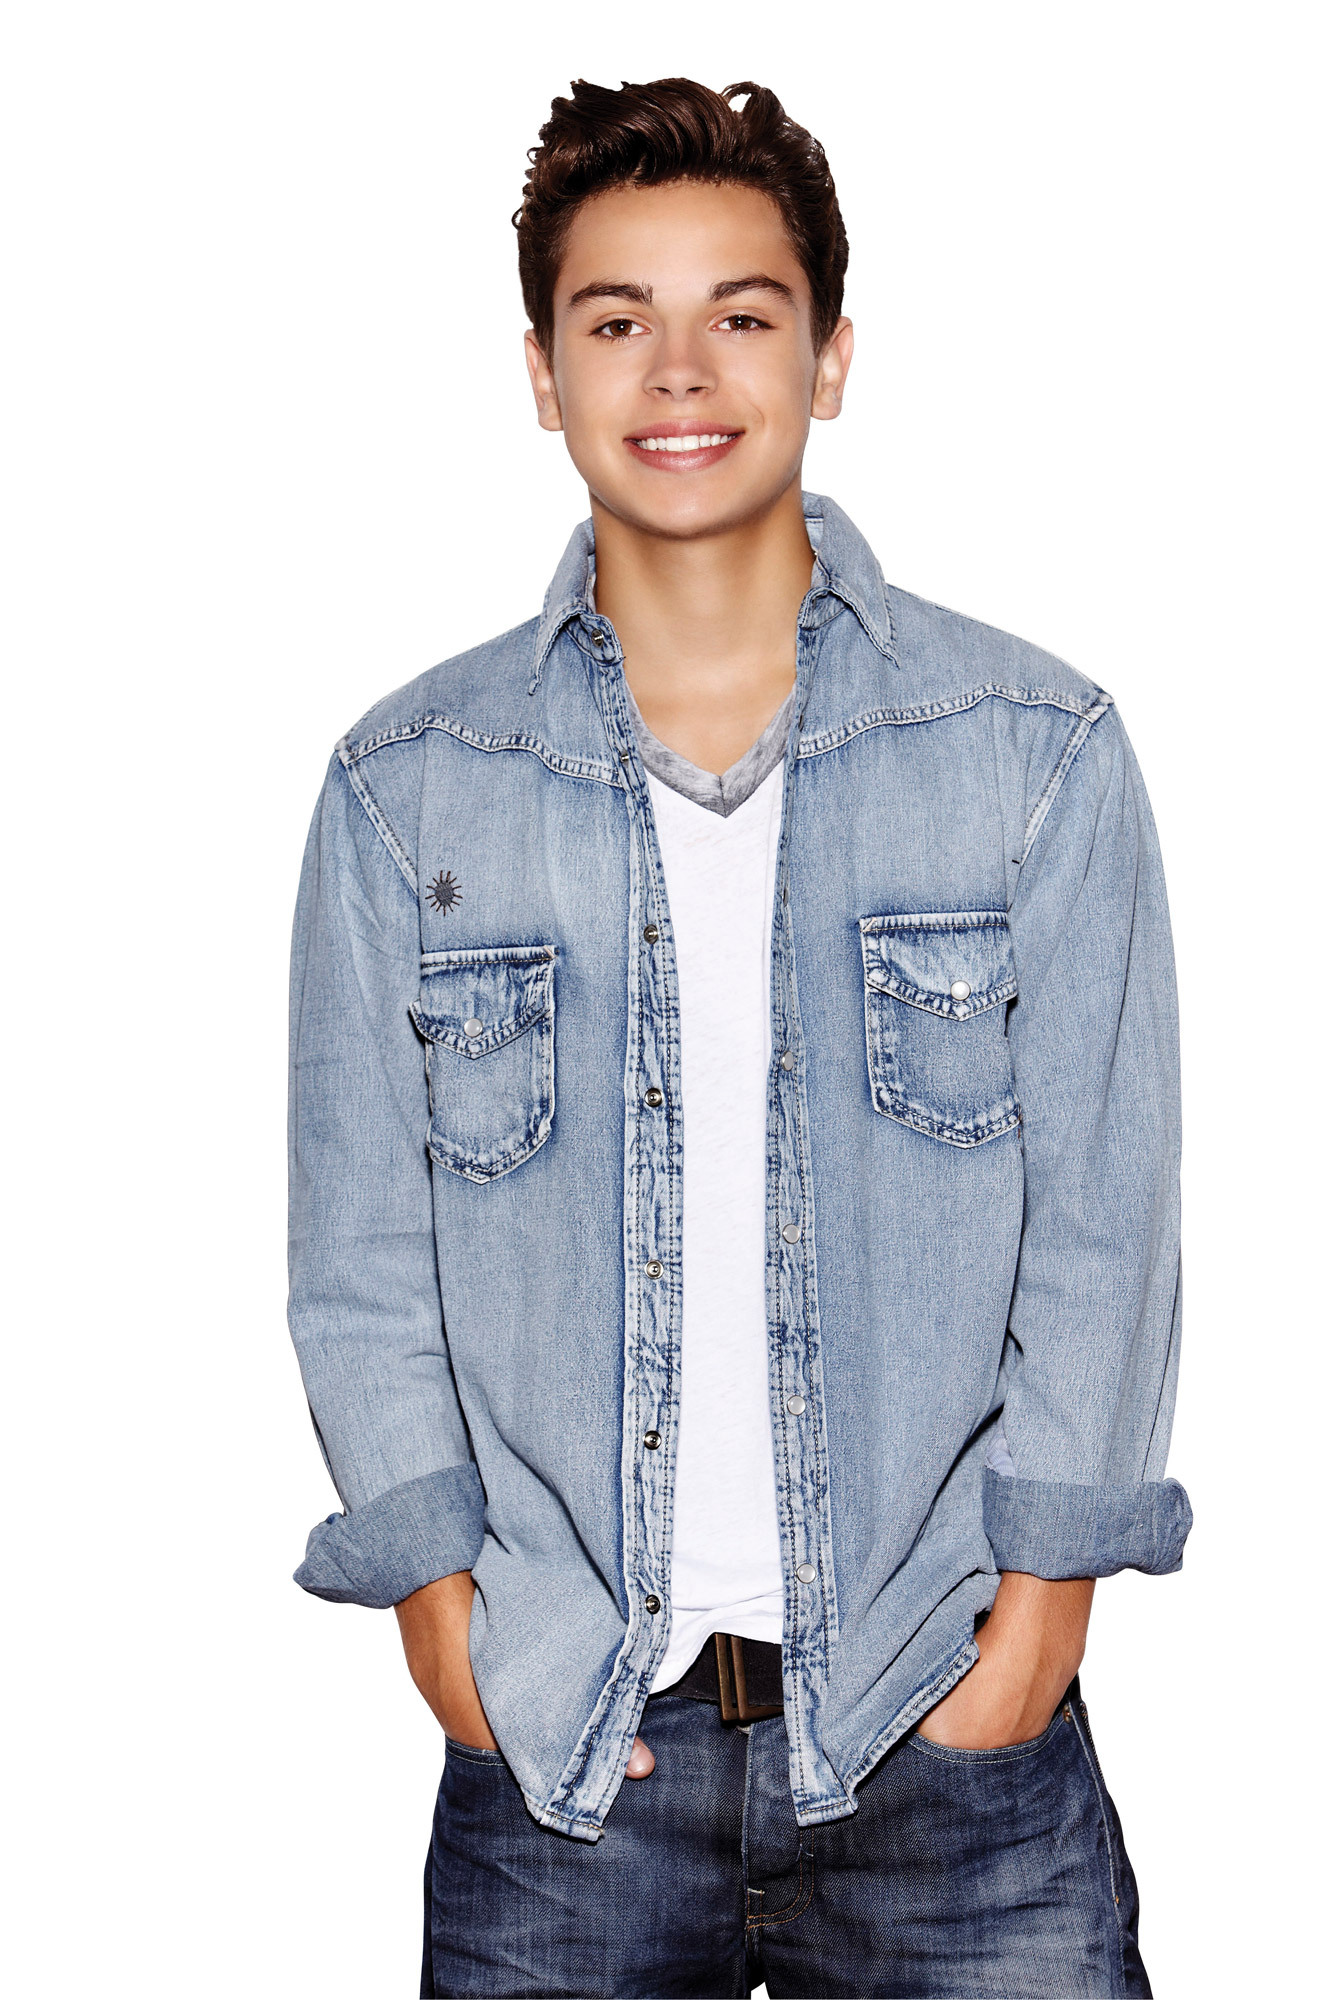 This summer, Boys & Girls Clubs of America and Staples are teaming up with teen actor Jake T. Austin, for the 6th annual Staples for Students national school supply drive to help kids get the tools they need to be successful in school and achieve great futures. (Photo: Business Wire)